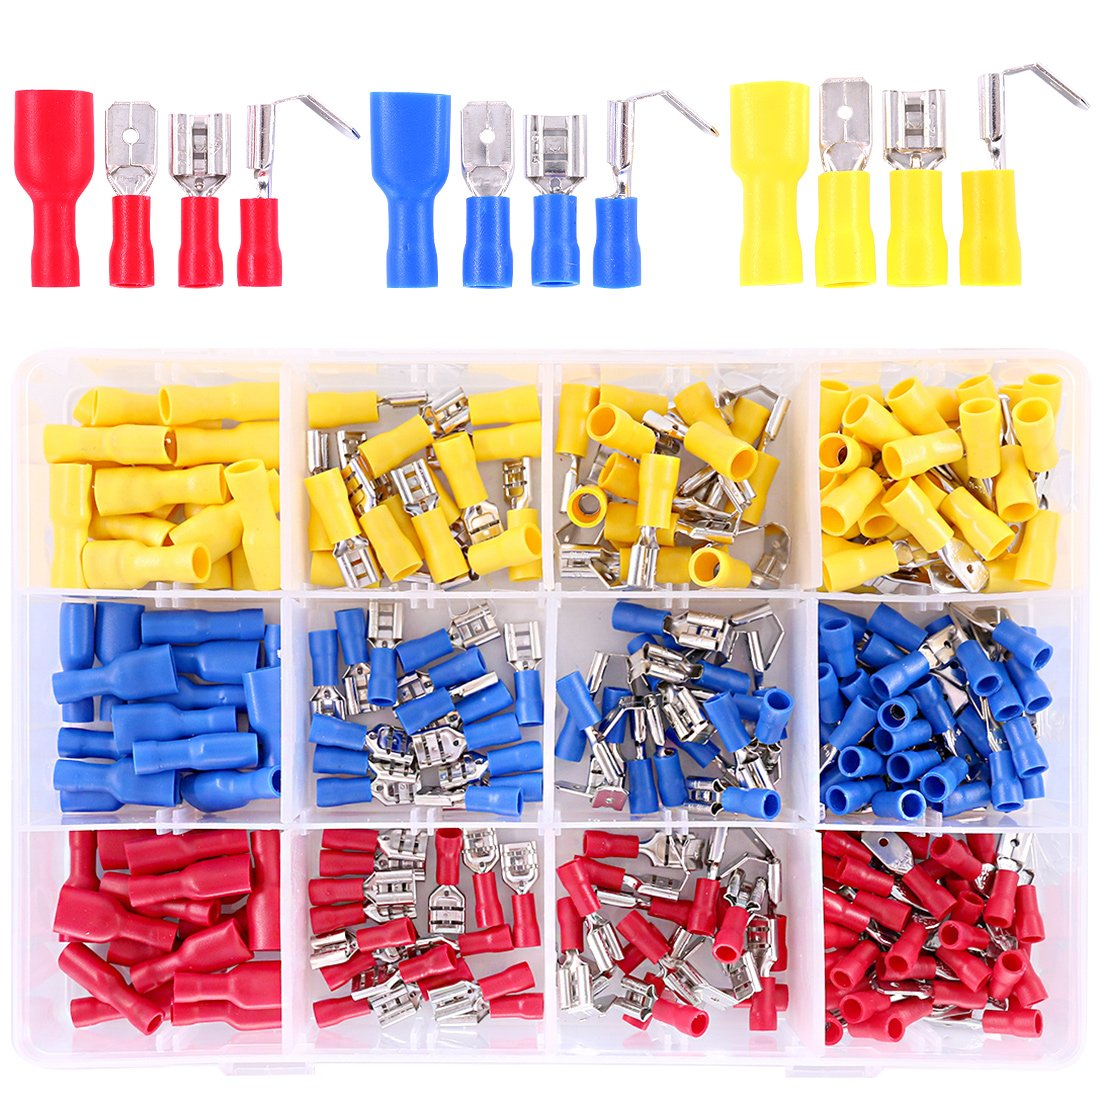 Hilitchi 255Pcs 22-16/16-14/12-10AWG Fully Insulated Female/Male Spade Quick Wire Crimp Terminals Connectors Kit by Hilitchi (Image #1)